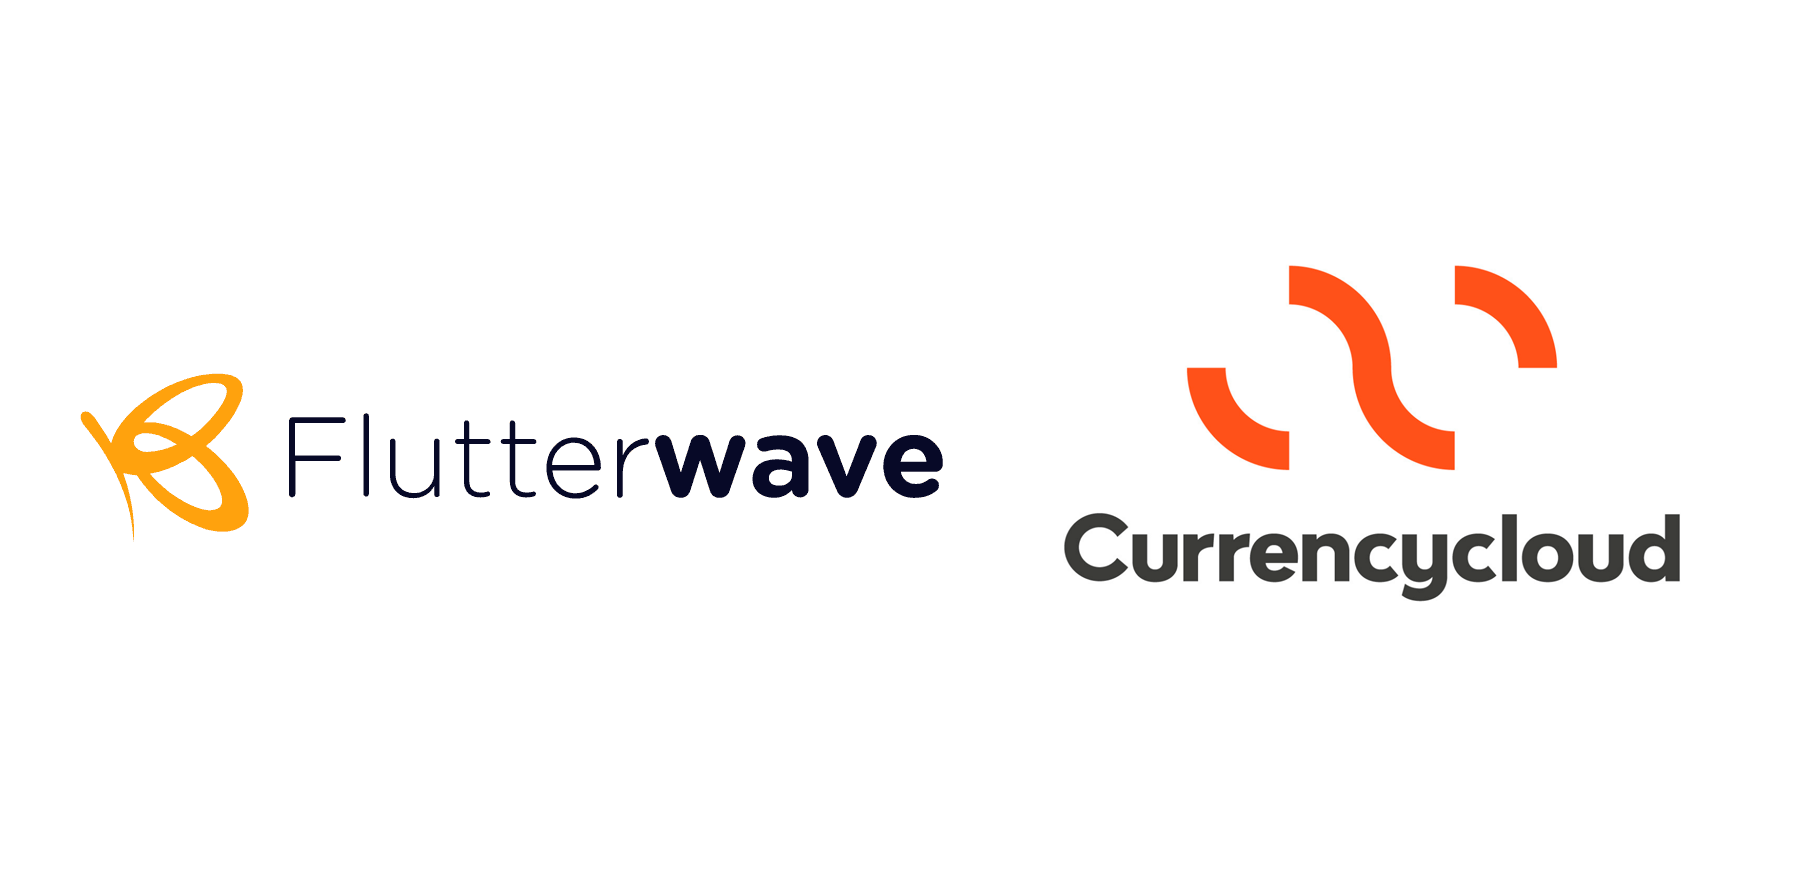 Flutterwave Partners with Currencycloud to Help Accelerate Expansion in Europe and US